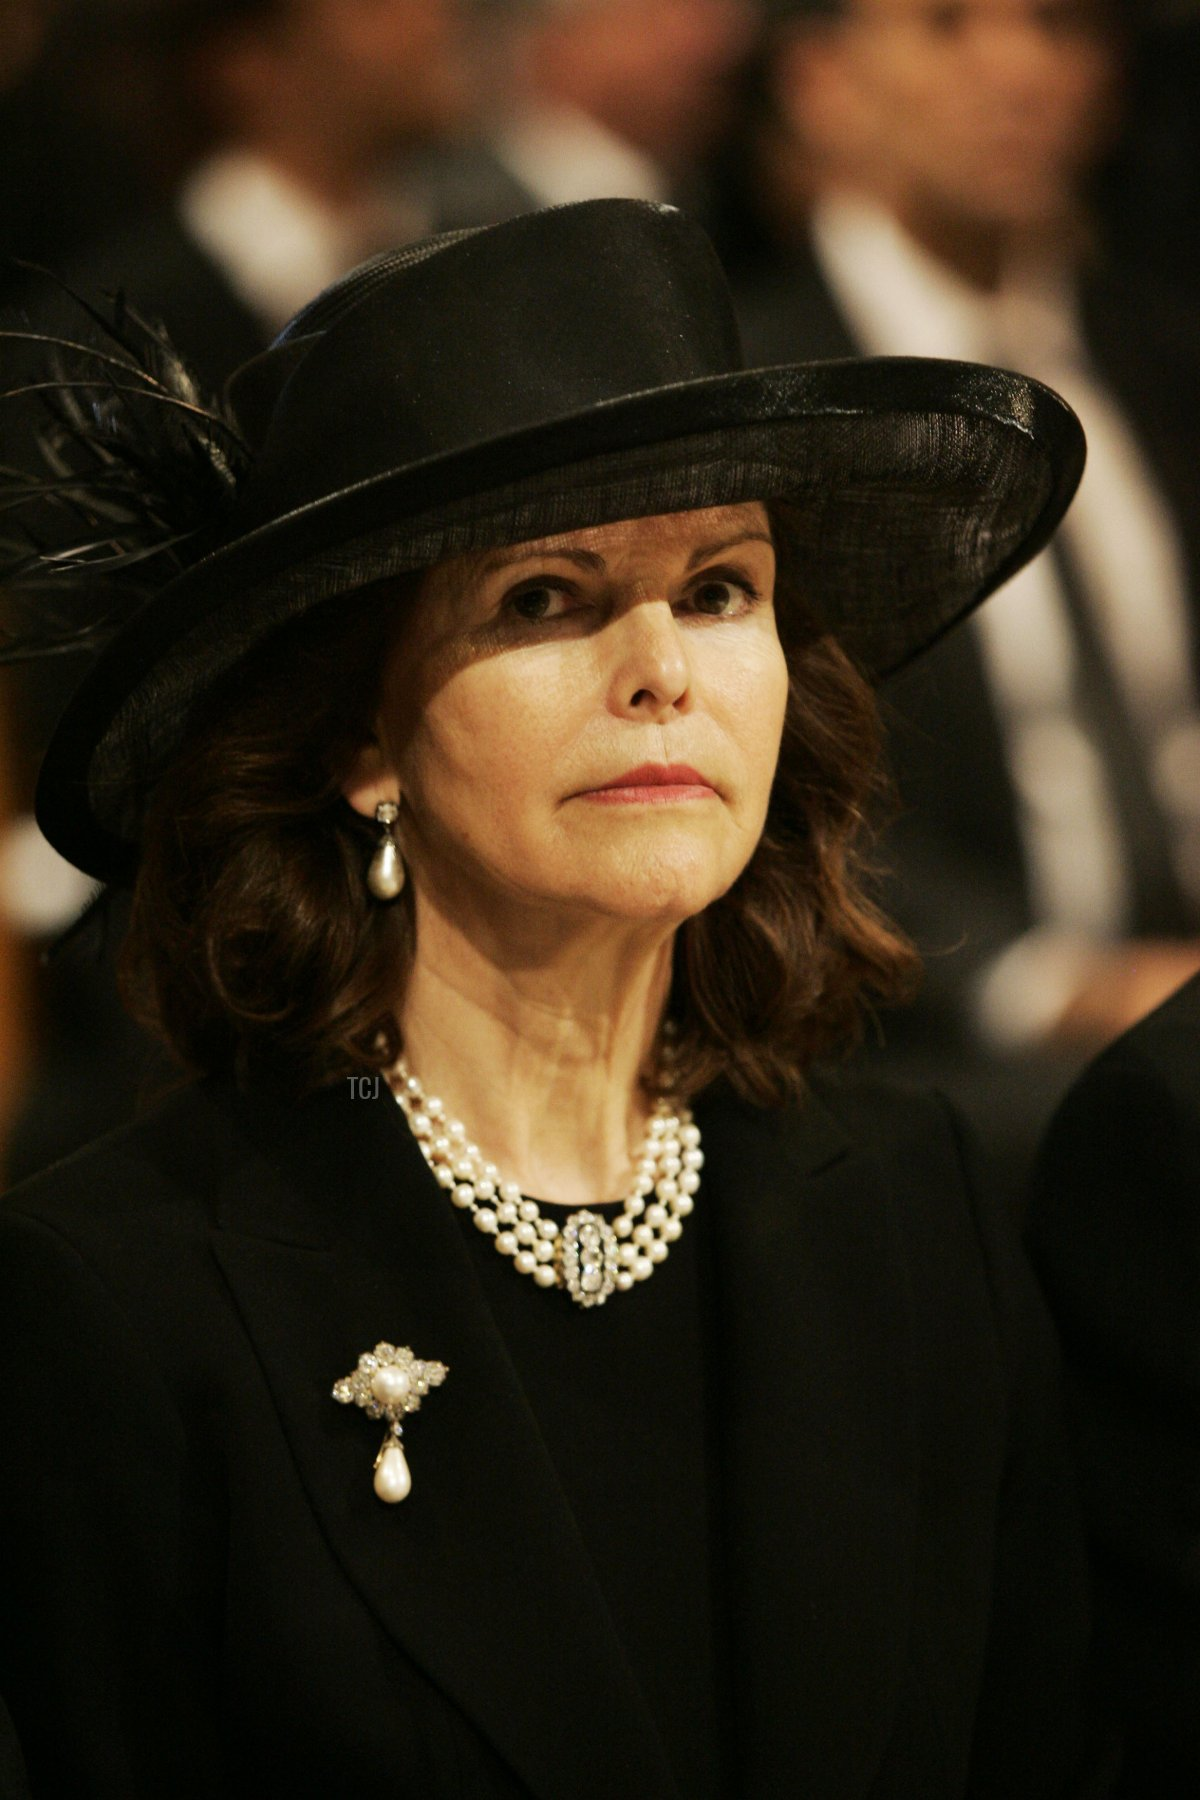 Queen Silvia of Sweden is seen inside the Cathedral at the funeral service of Monaco's Prince Rainier III at Monaco Cathedral on April 15, 2005 in Monte Carlo, Monaco